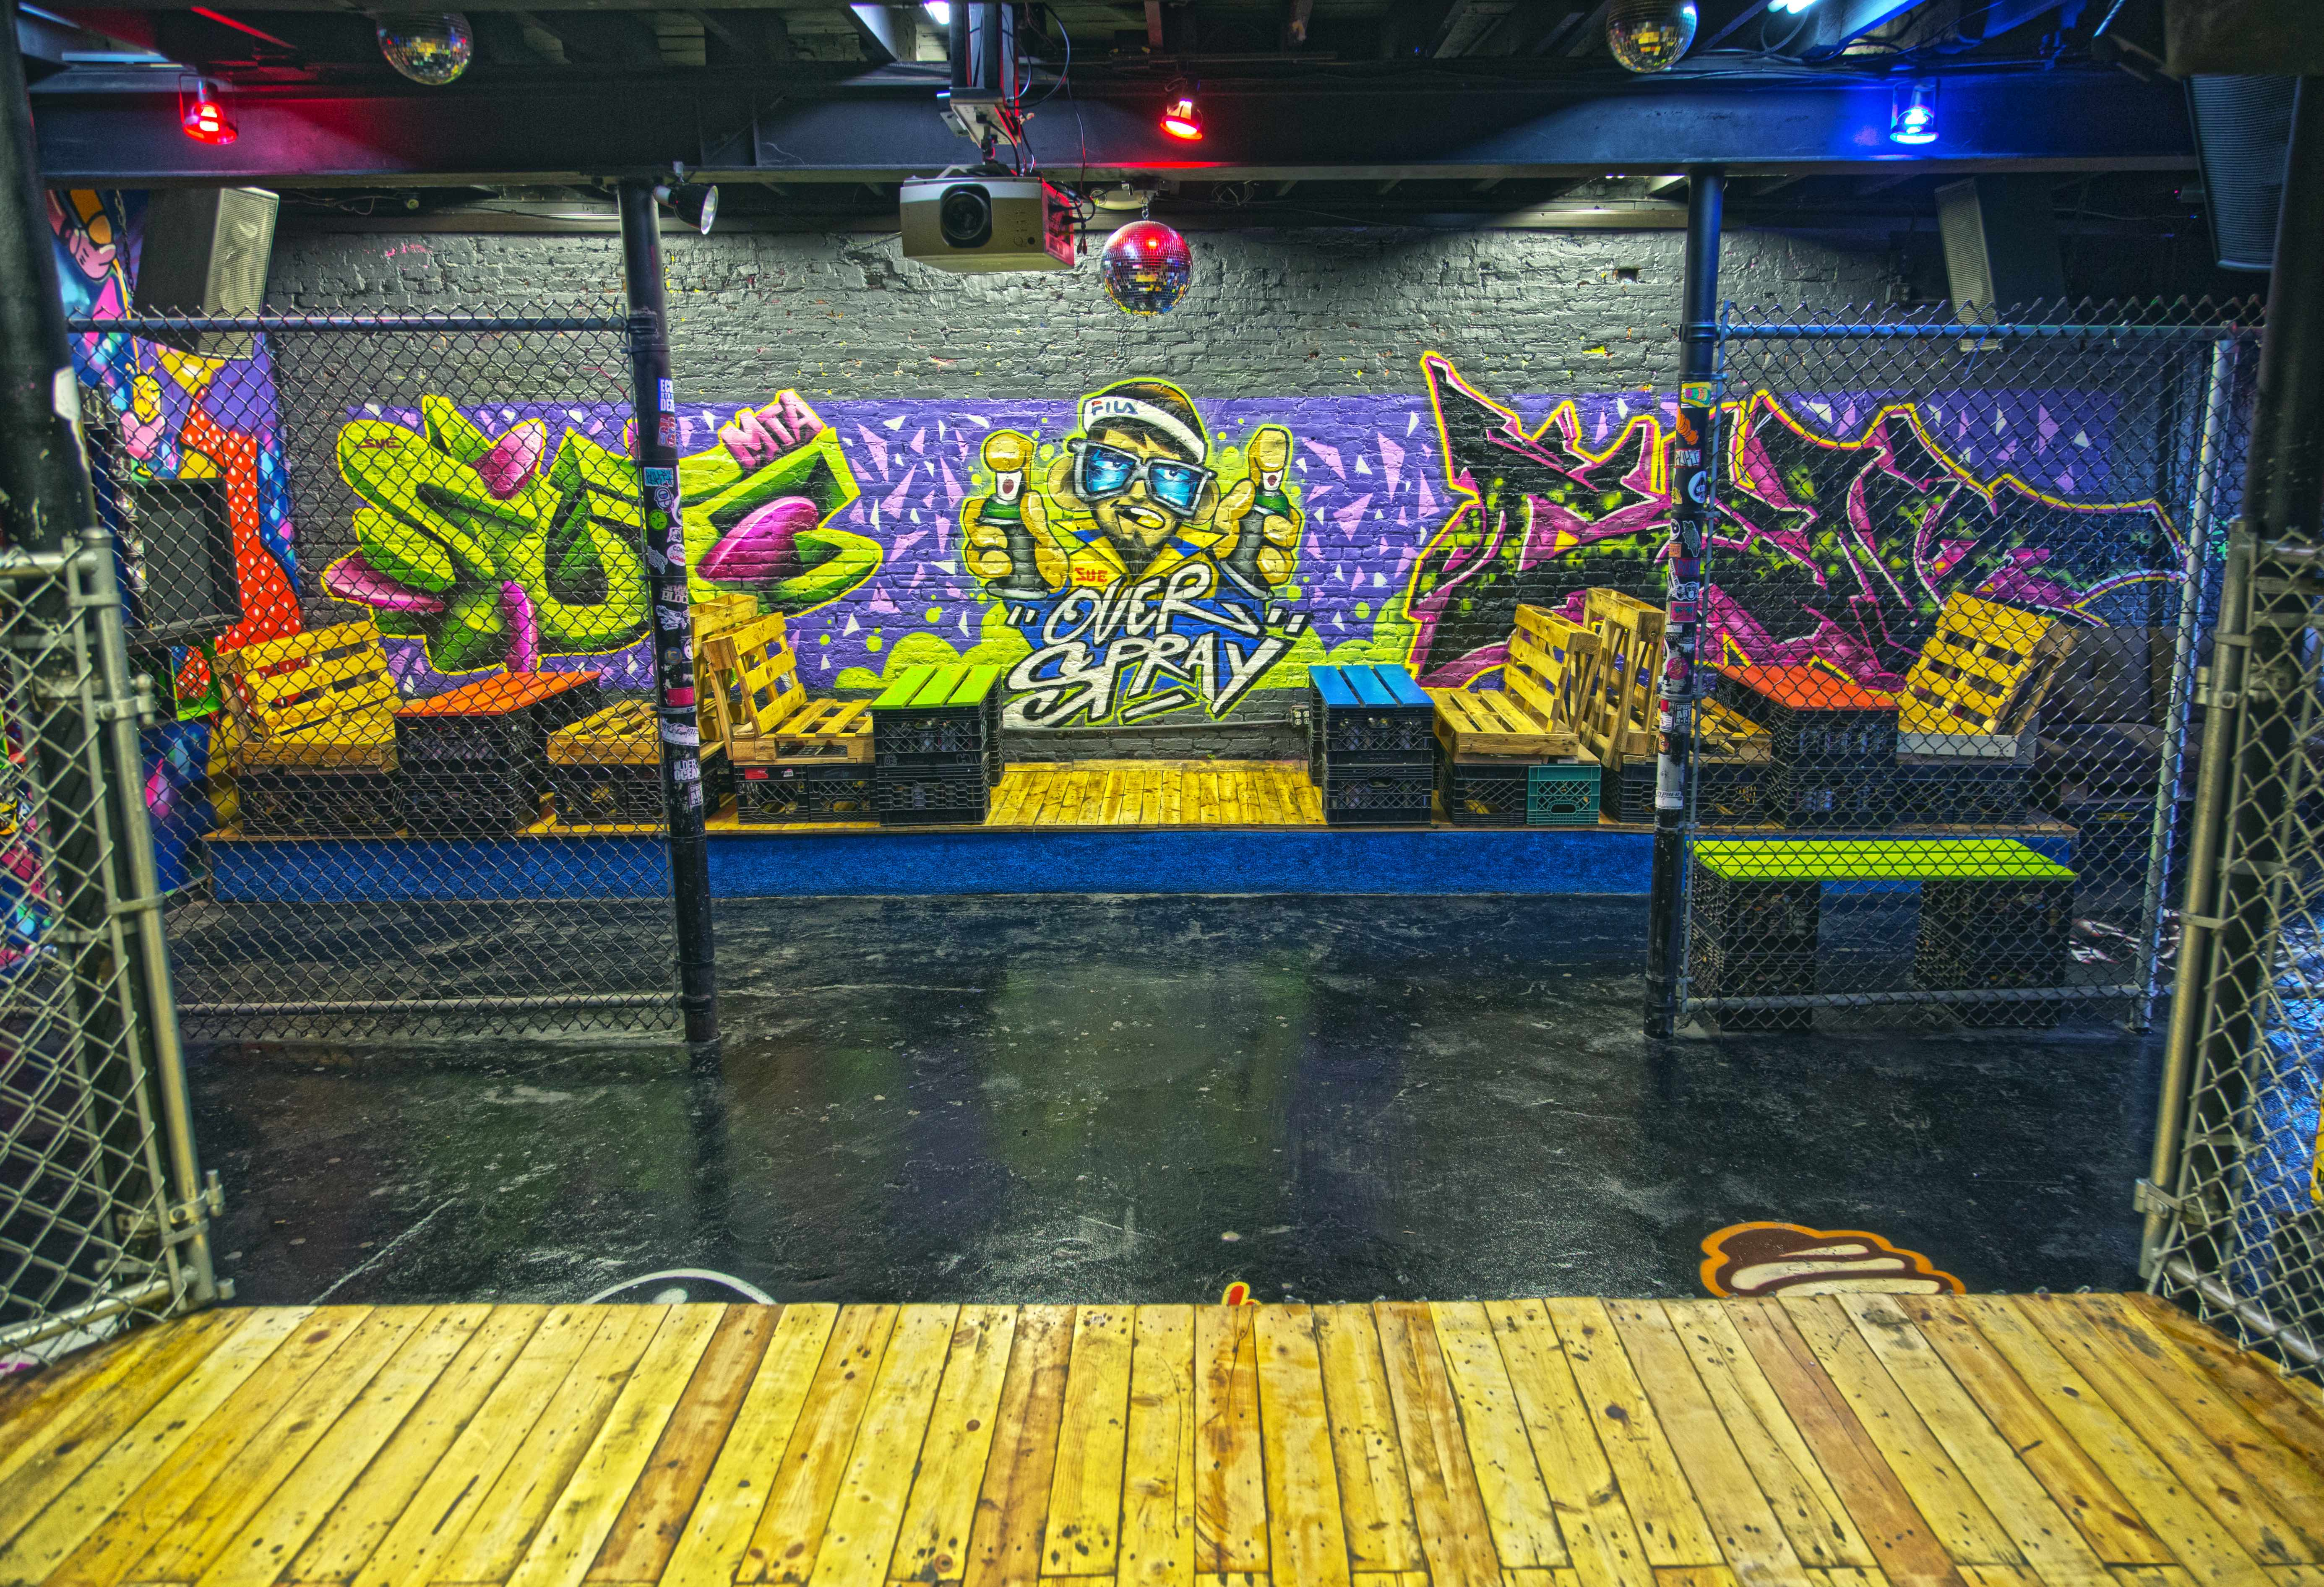 Overspray event space at Nyc Arts Cypher in Greater New York